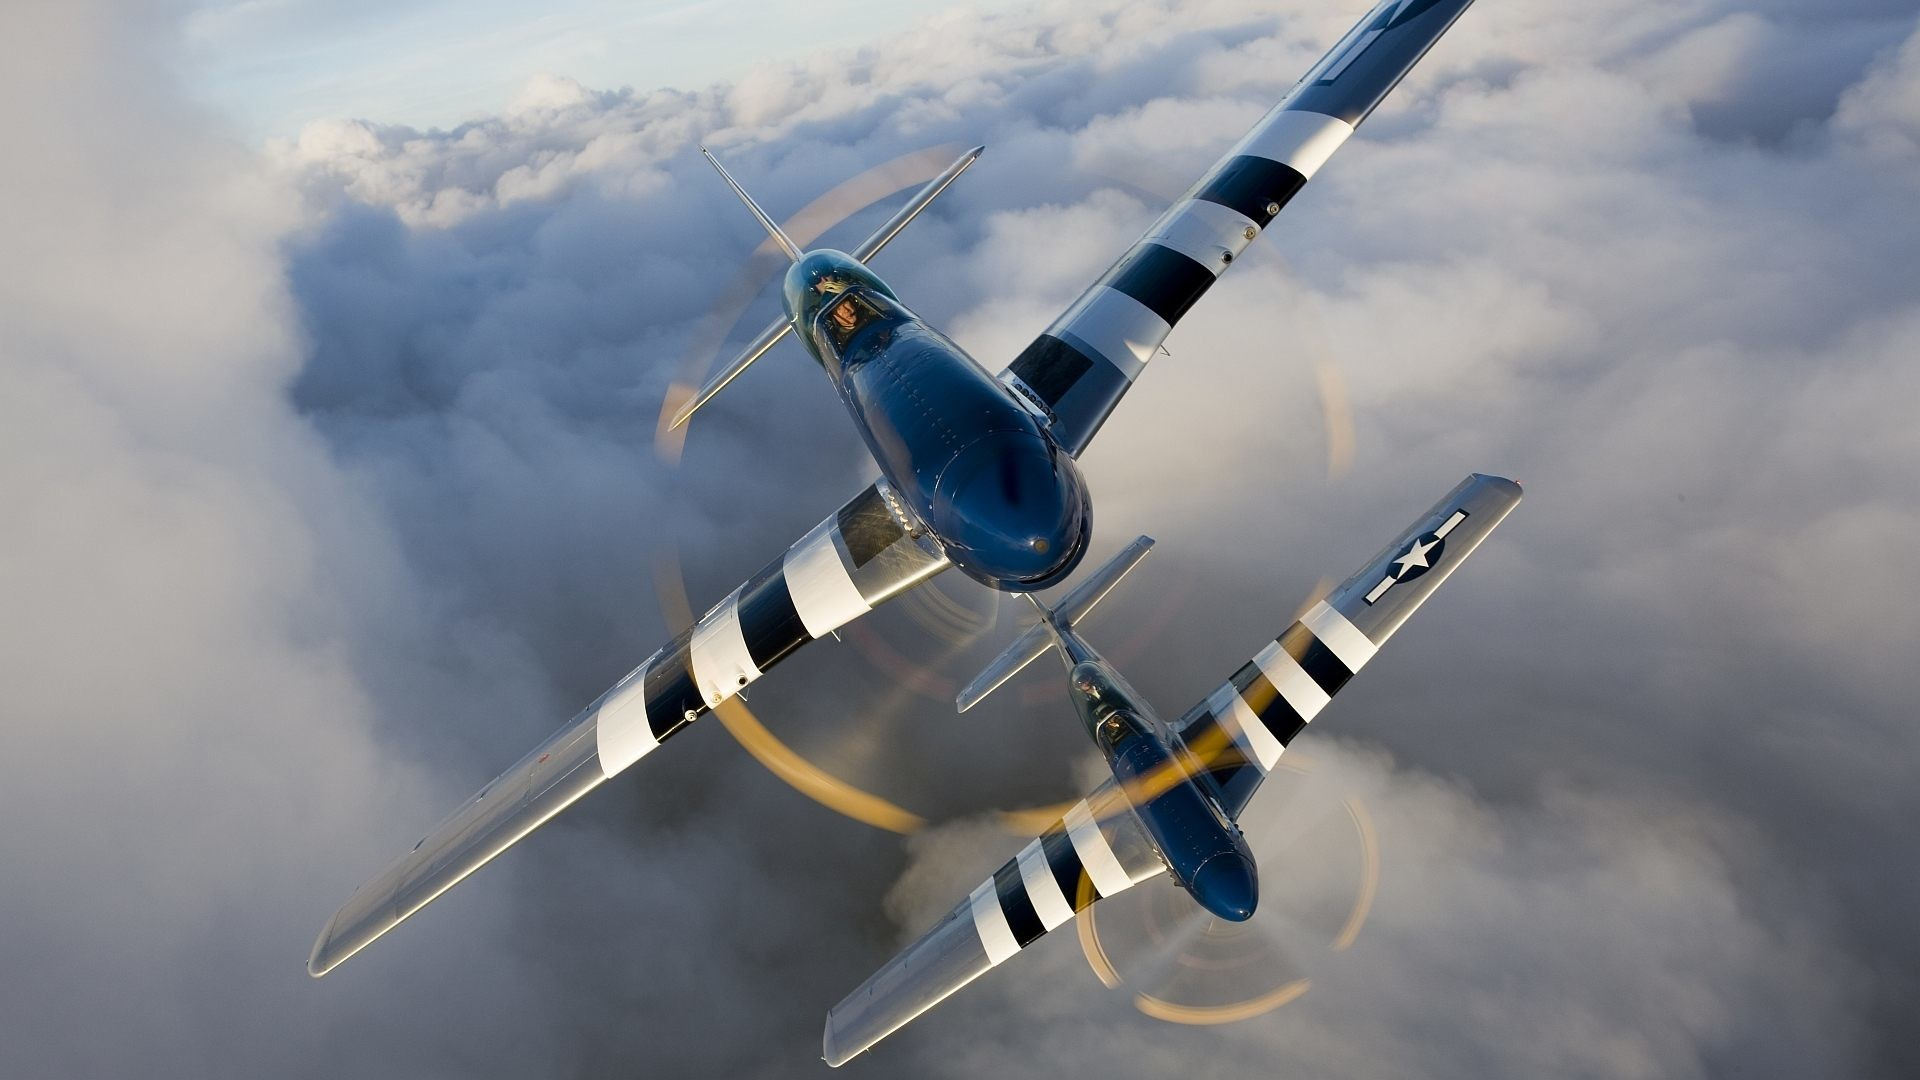 Hd Ww2 Plane Wallpapers (74+ Images